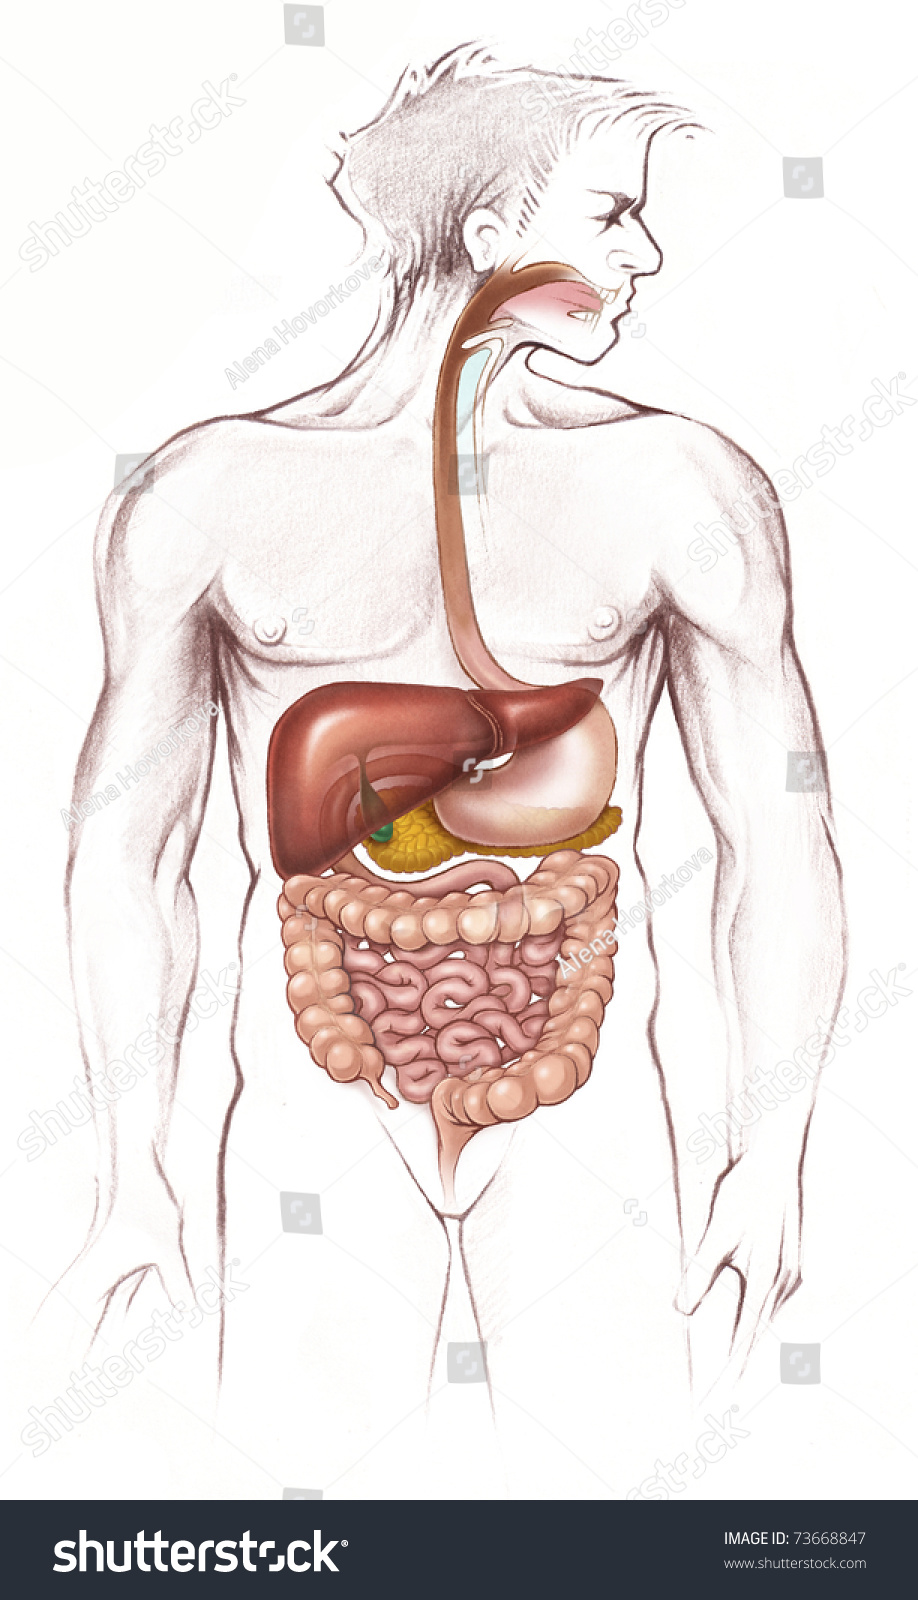 Digestive System Full Body Anatomy Simplified Stock Illustration